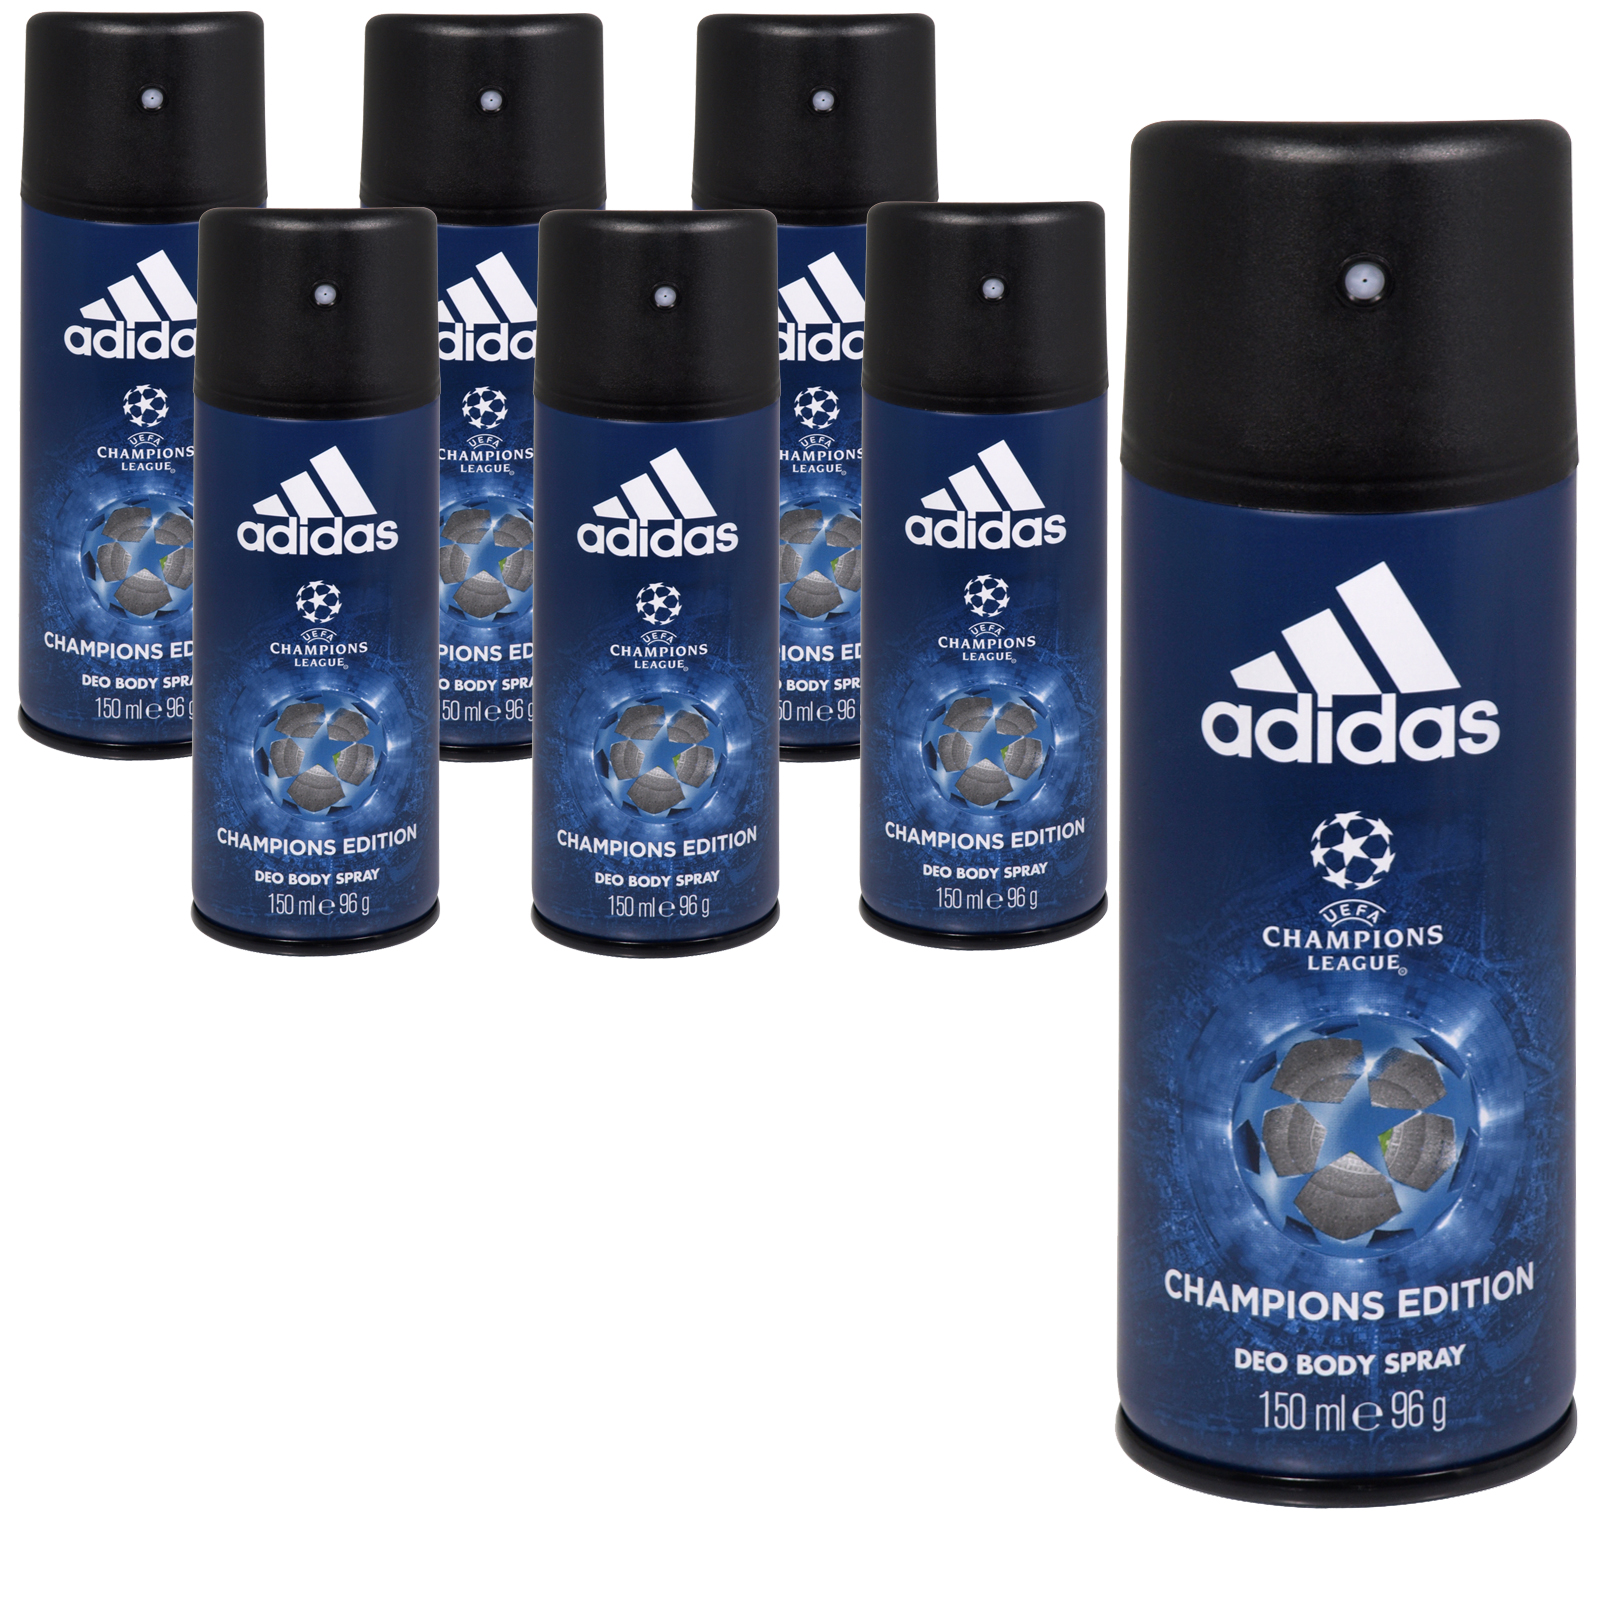 ADIDAS DEO BODYSPRAY 150ML CHAMPIONS LEAGUE CHAMPIONS EDITION NO 4 X6